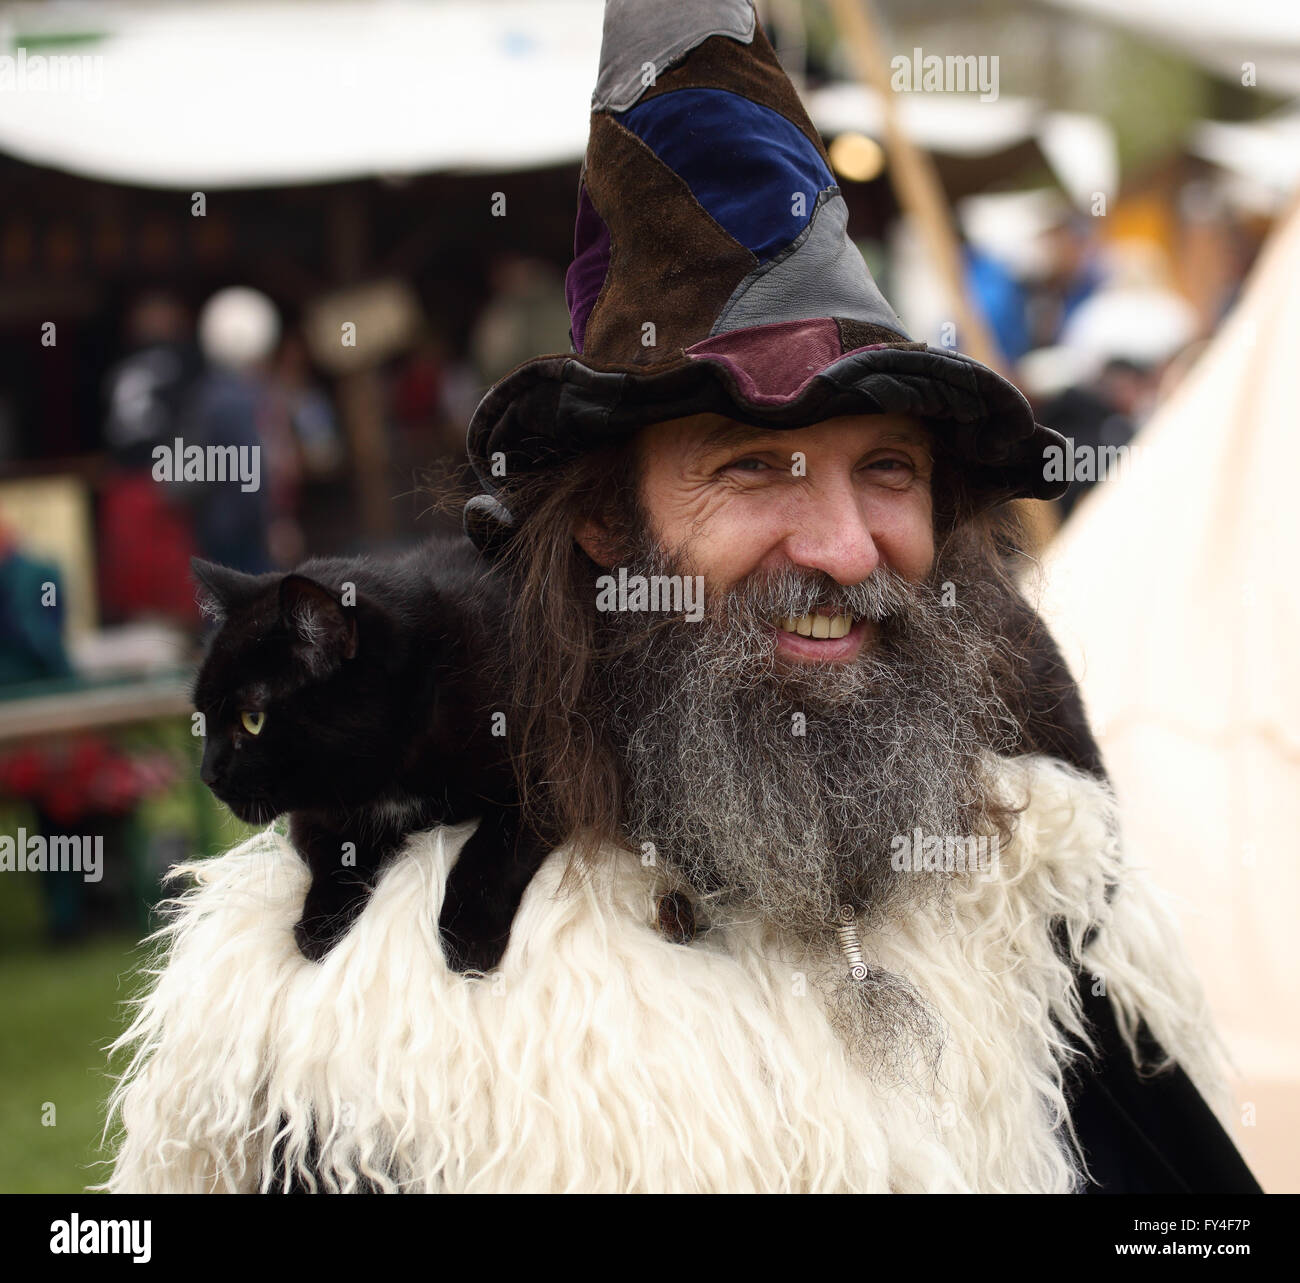 Bearded man dressed as wizard with a large pointed hat and a black cat over his shoulder. - Stock Image